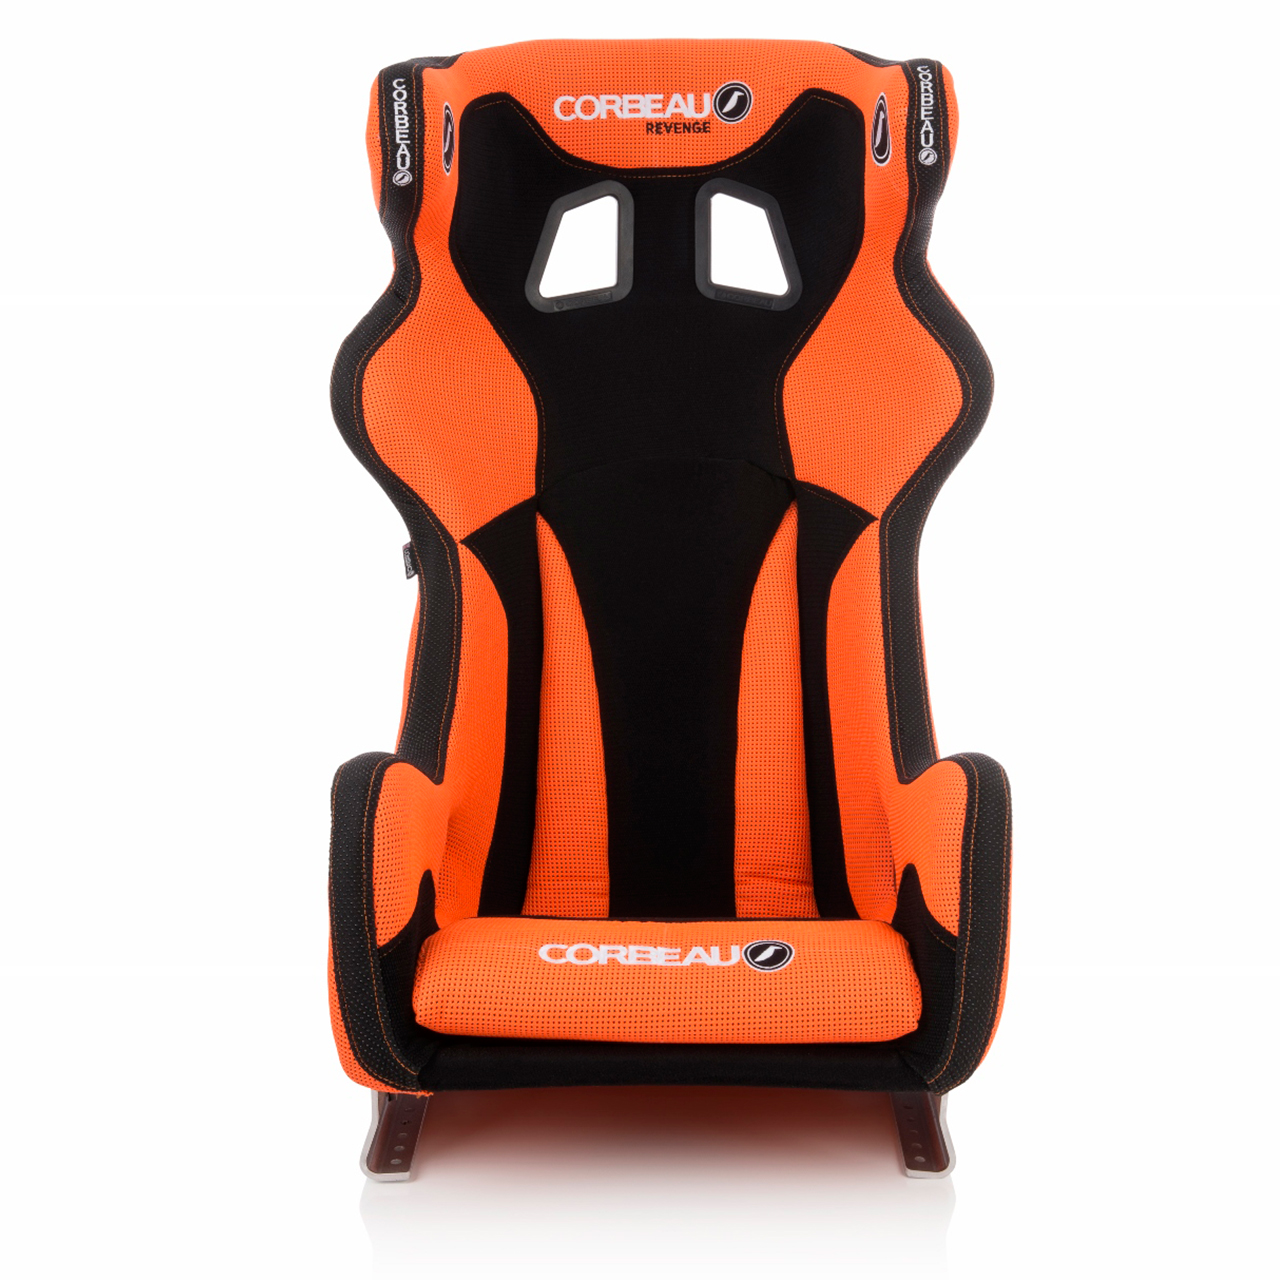 Corbeau Revenge X Custom Bucket Seat in Orange/Black - Front View